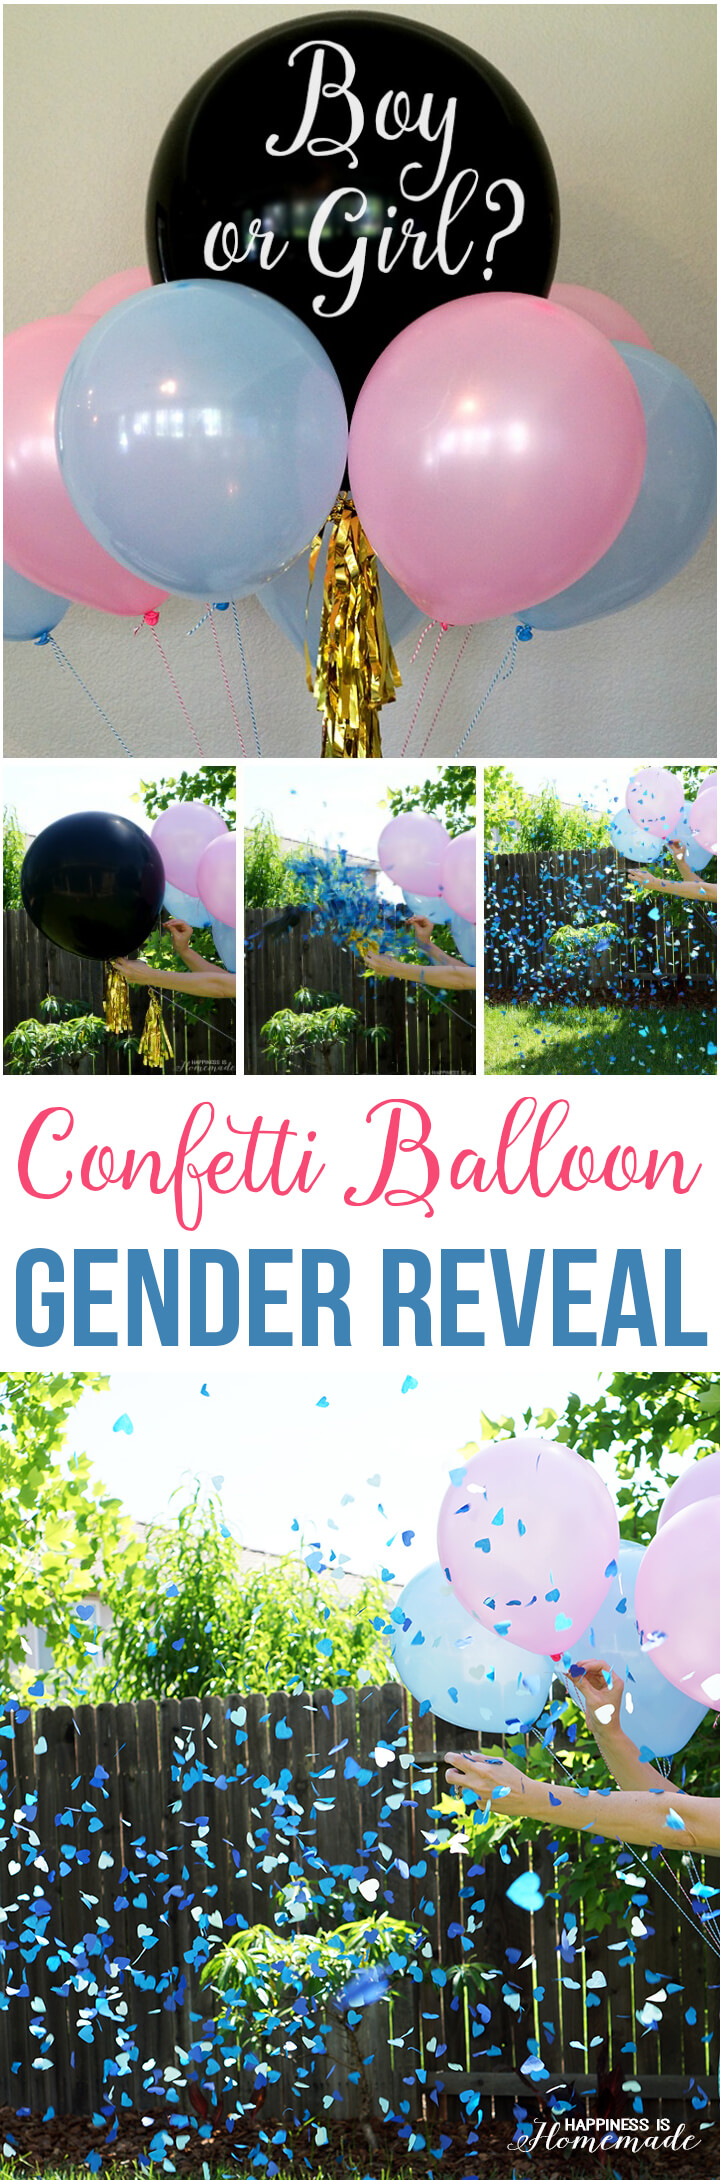 Confetti Balloon Gender Reveal Party Ideas